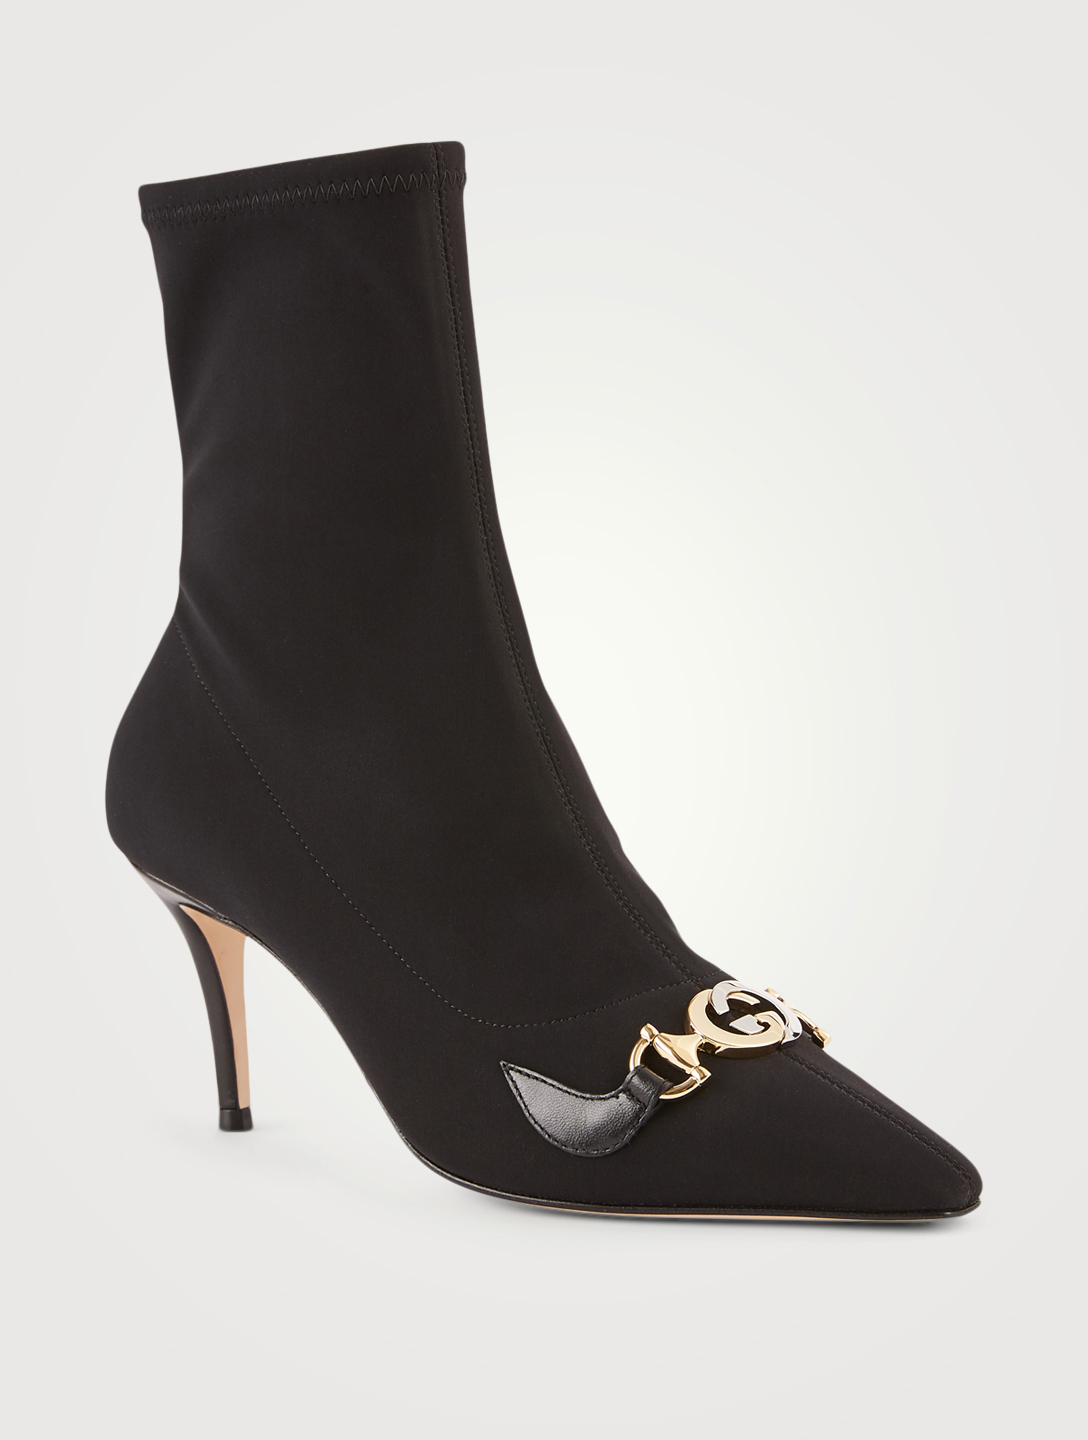 GUCCI Zumi Heeled Sock Ankle Boots Women's Black